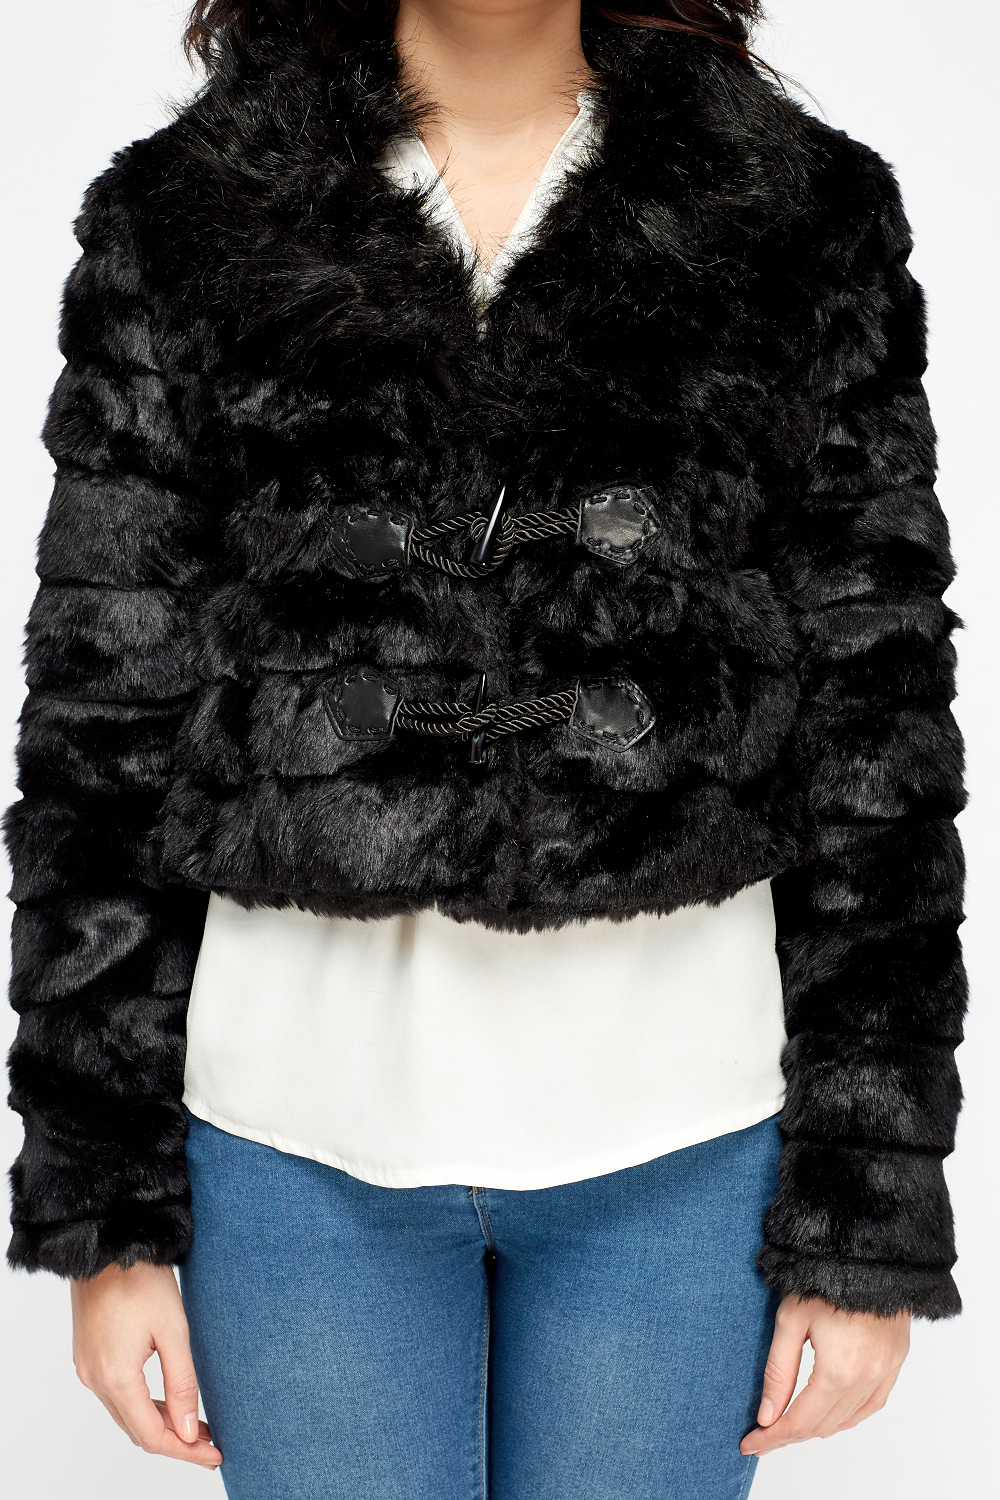 Faux Fur Cropped Jacket Just 163 5